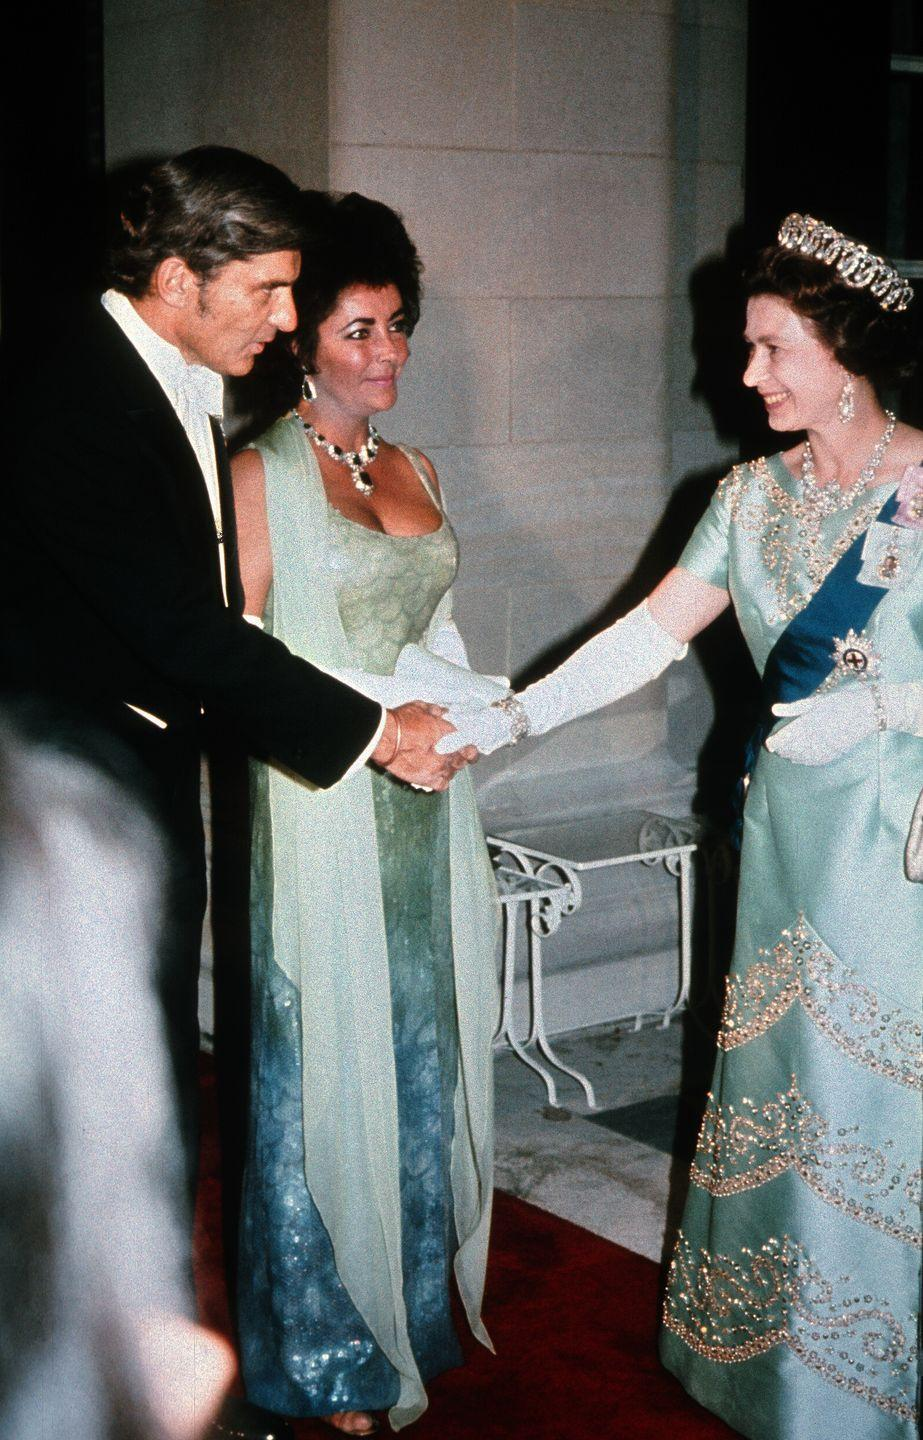 <p>Elizabeth met Elizabeth at a charity gala in 1976. The icons are basically twinning, from their dress colors down to their over-the-top jewelry, and we're here for it.</p>